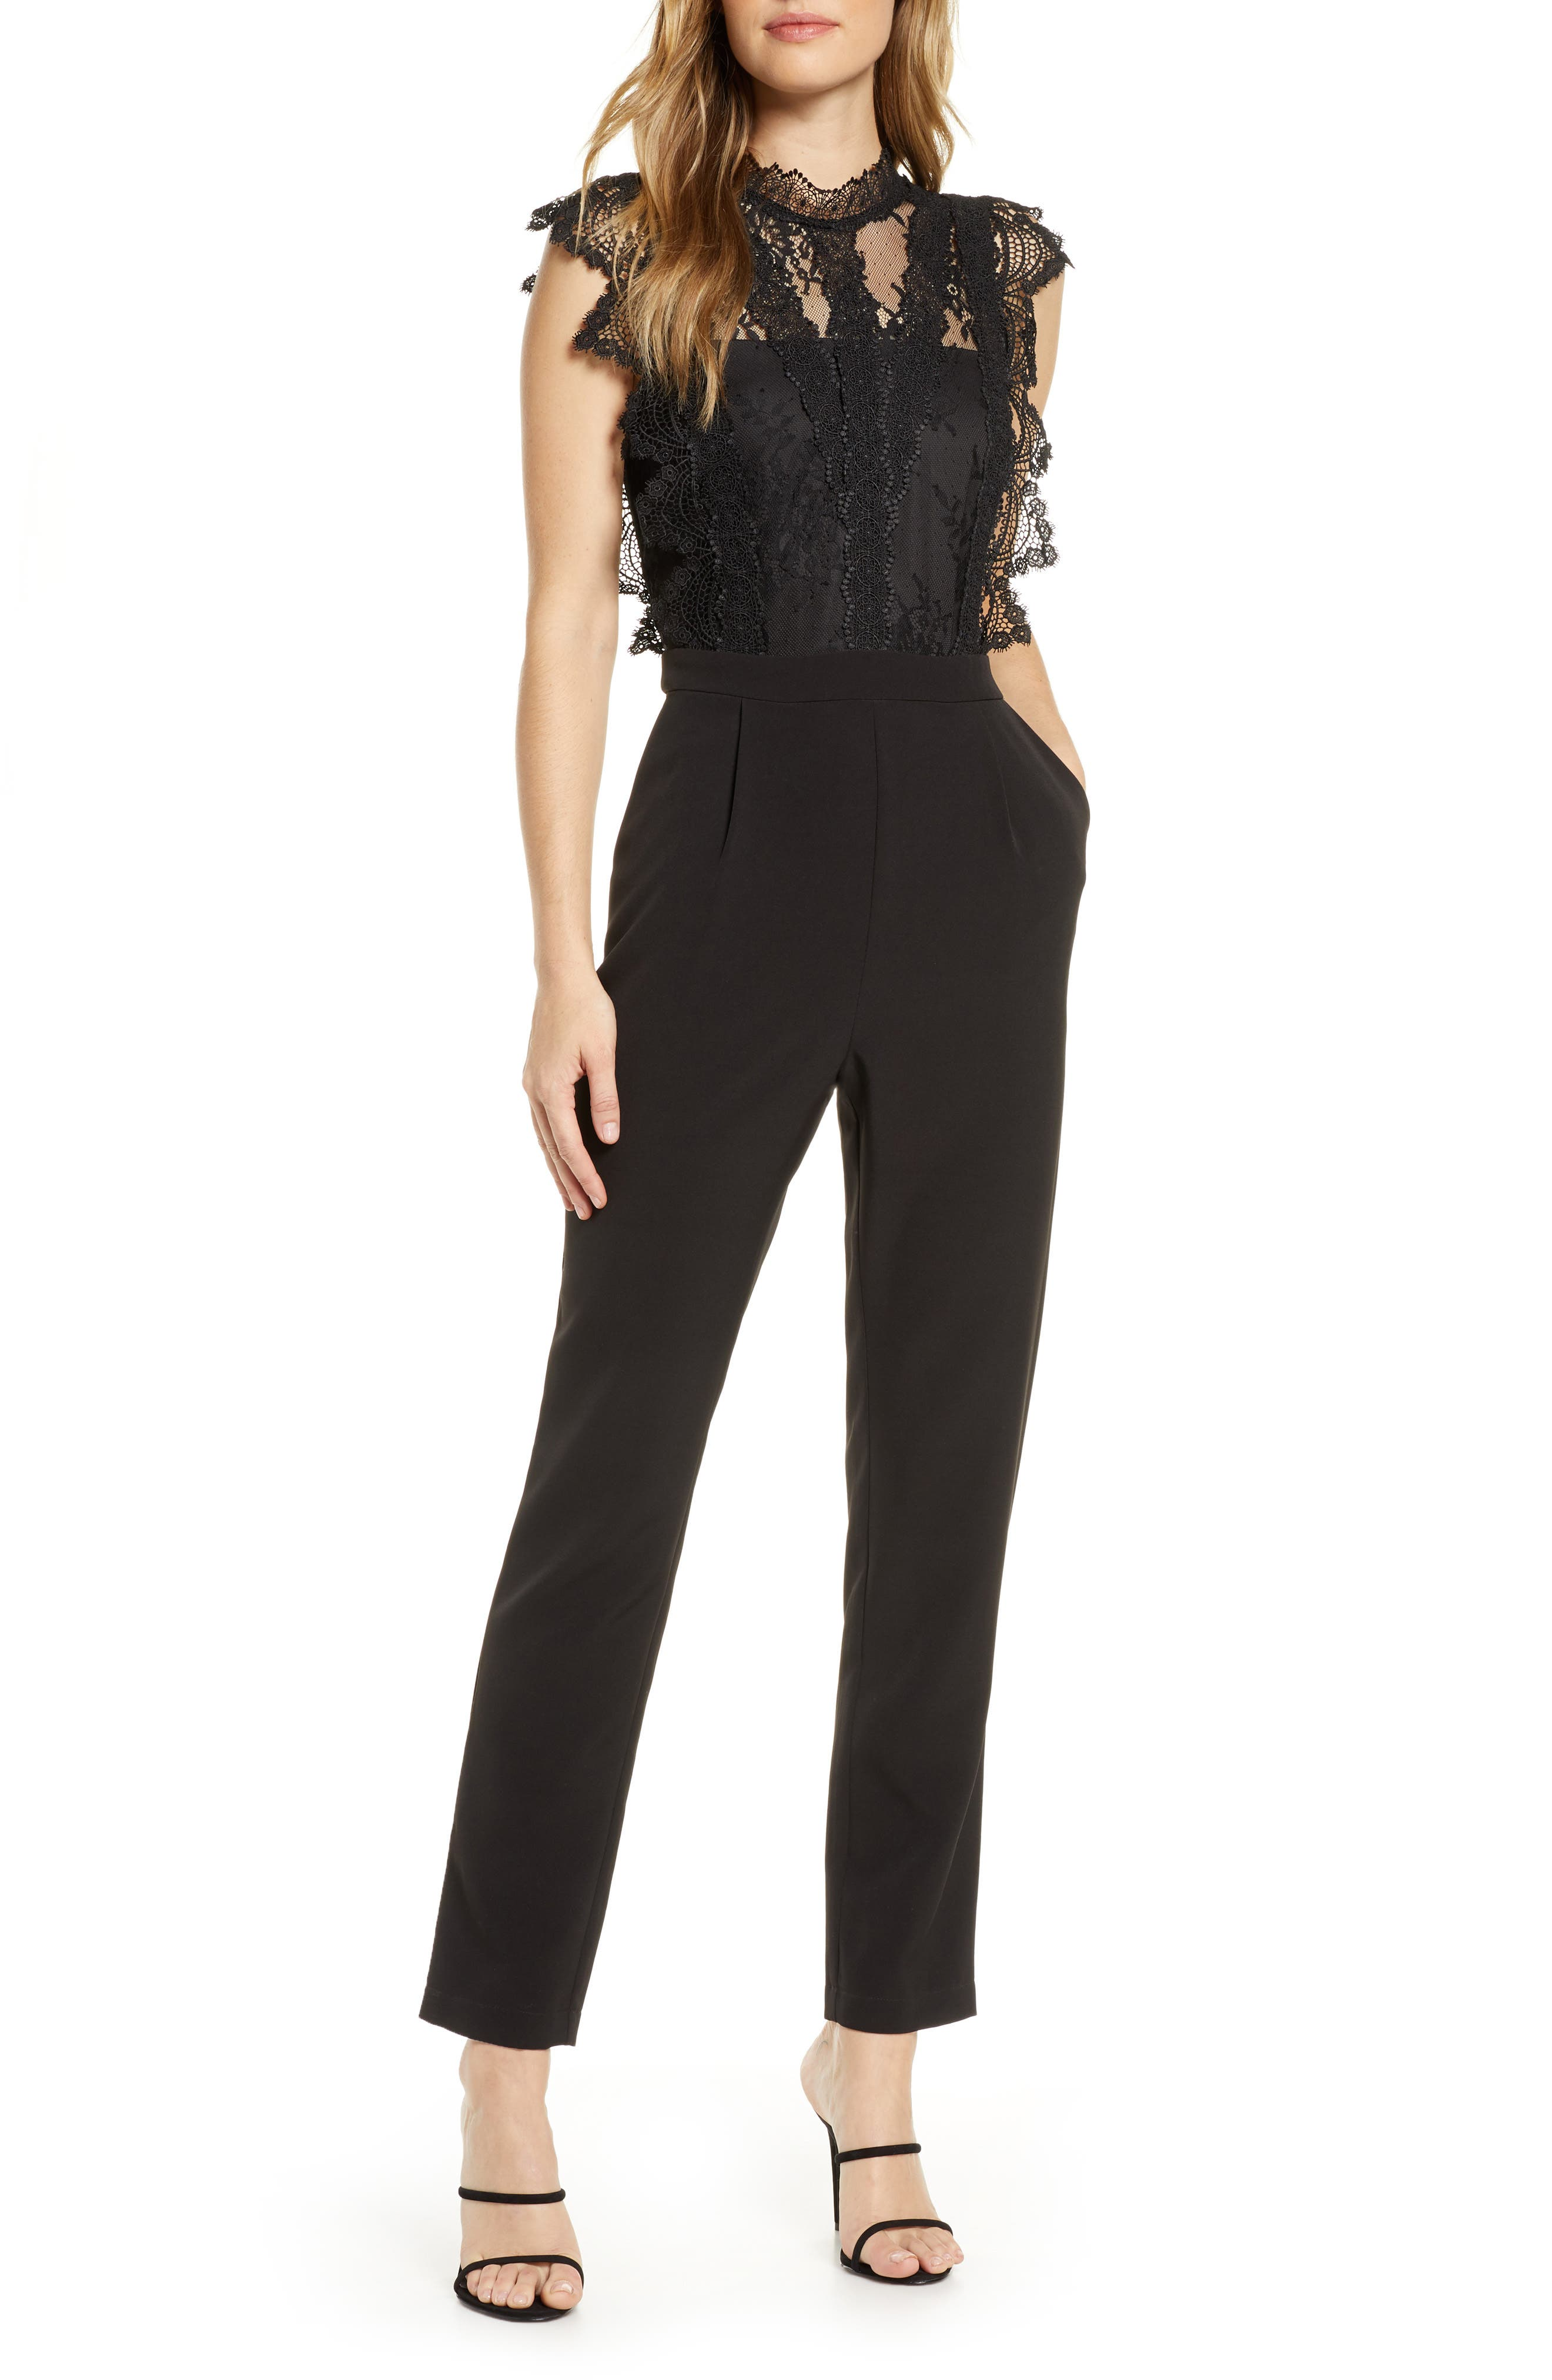 Image of Adelyn Rae Madeline Scalloped Lace Jumpsuit